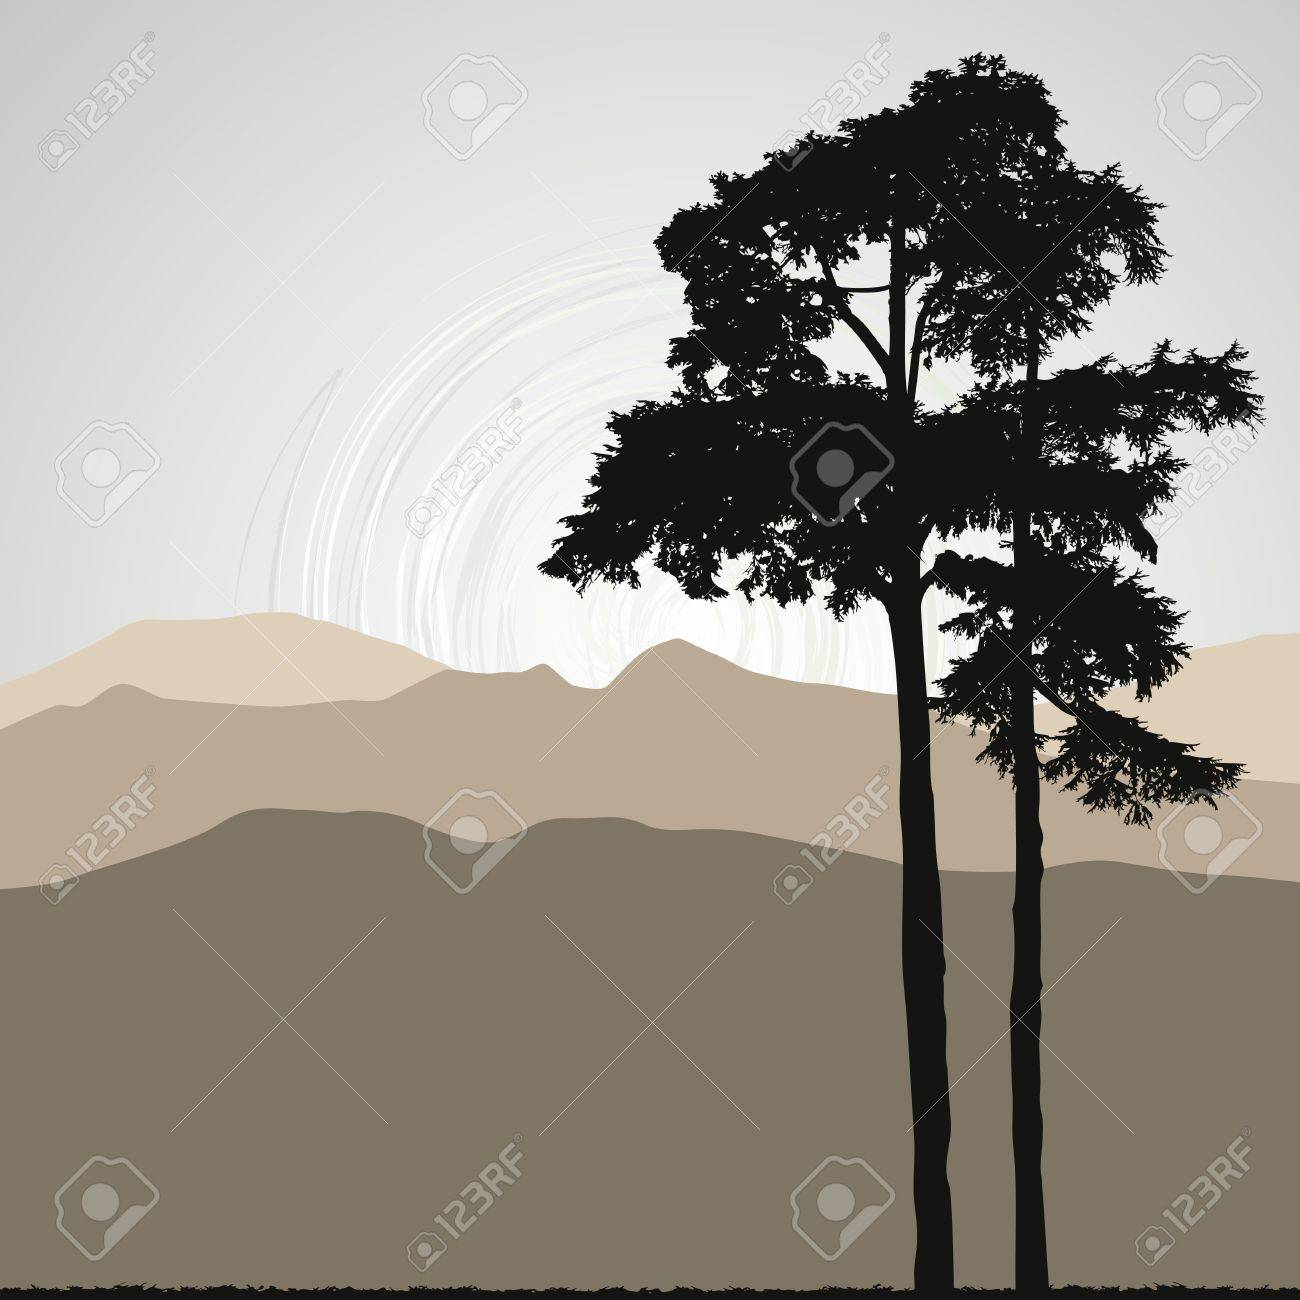 Tree silhouette on an abstract background Stock Vector - 13231548